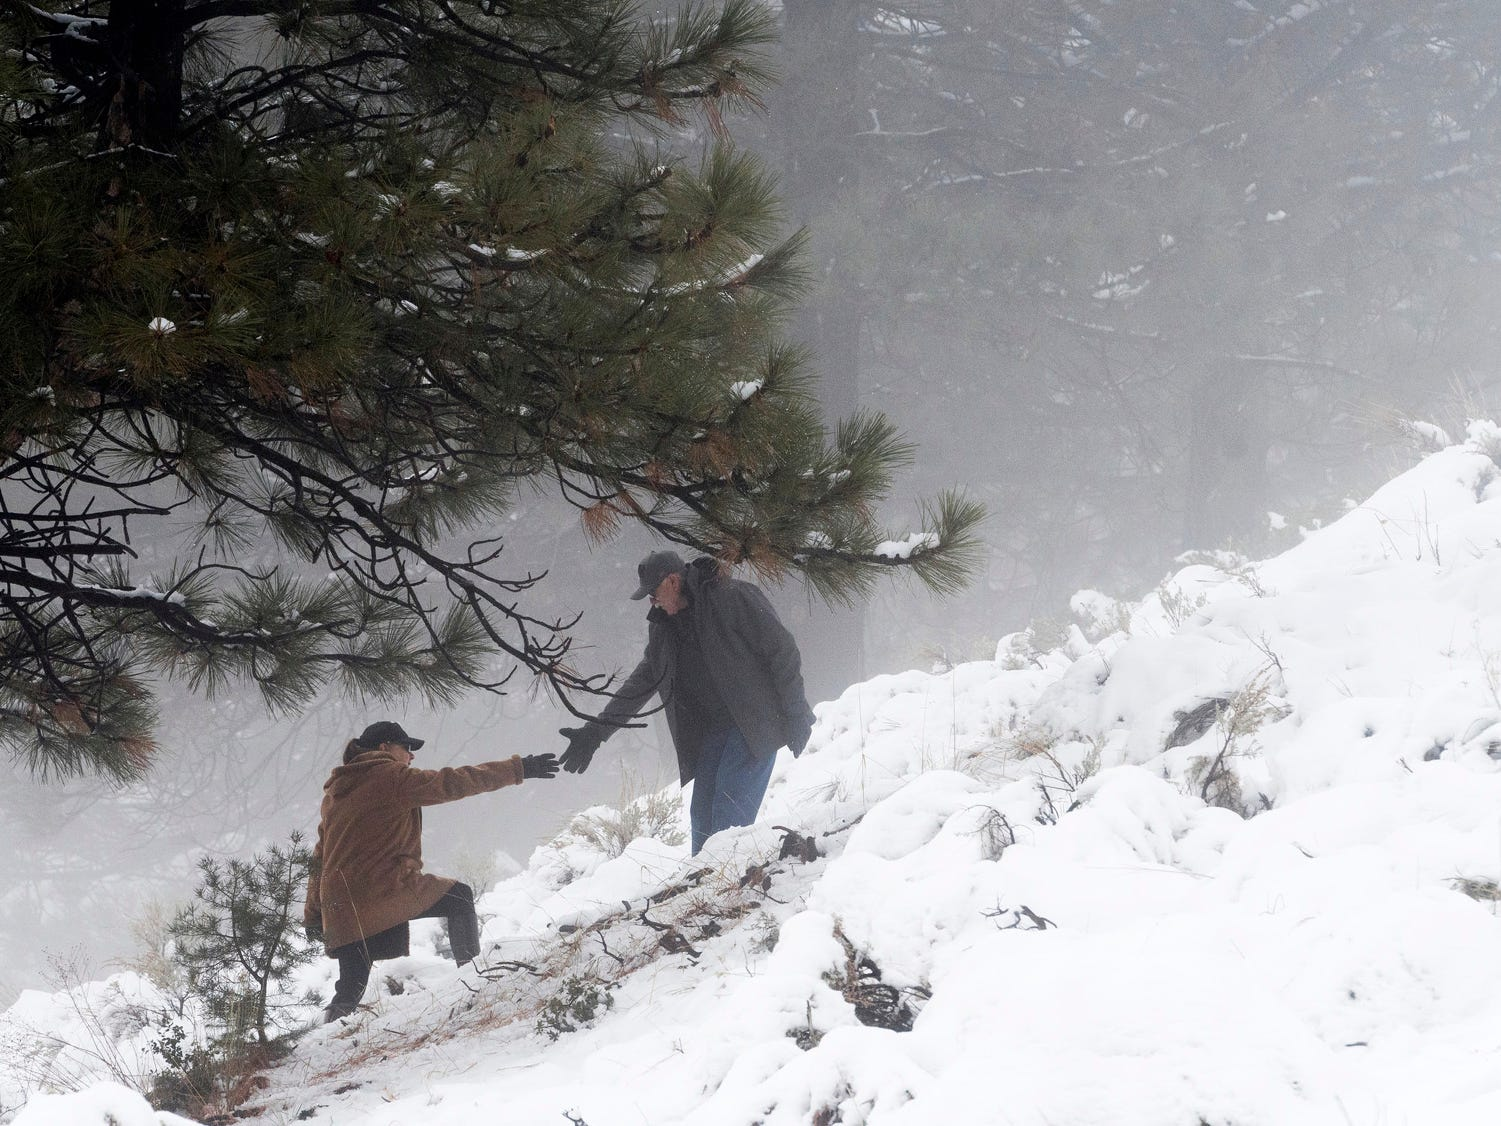 A hiker reaches out for help as visitors turned out to to play in the new coat of snow covering the mountains, Friday Dec. 7, 2018 in Wrightwood, Calif.